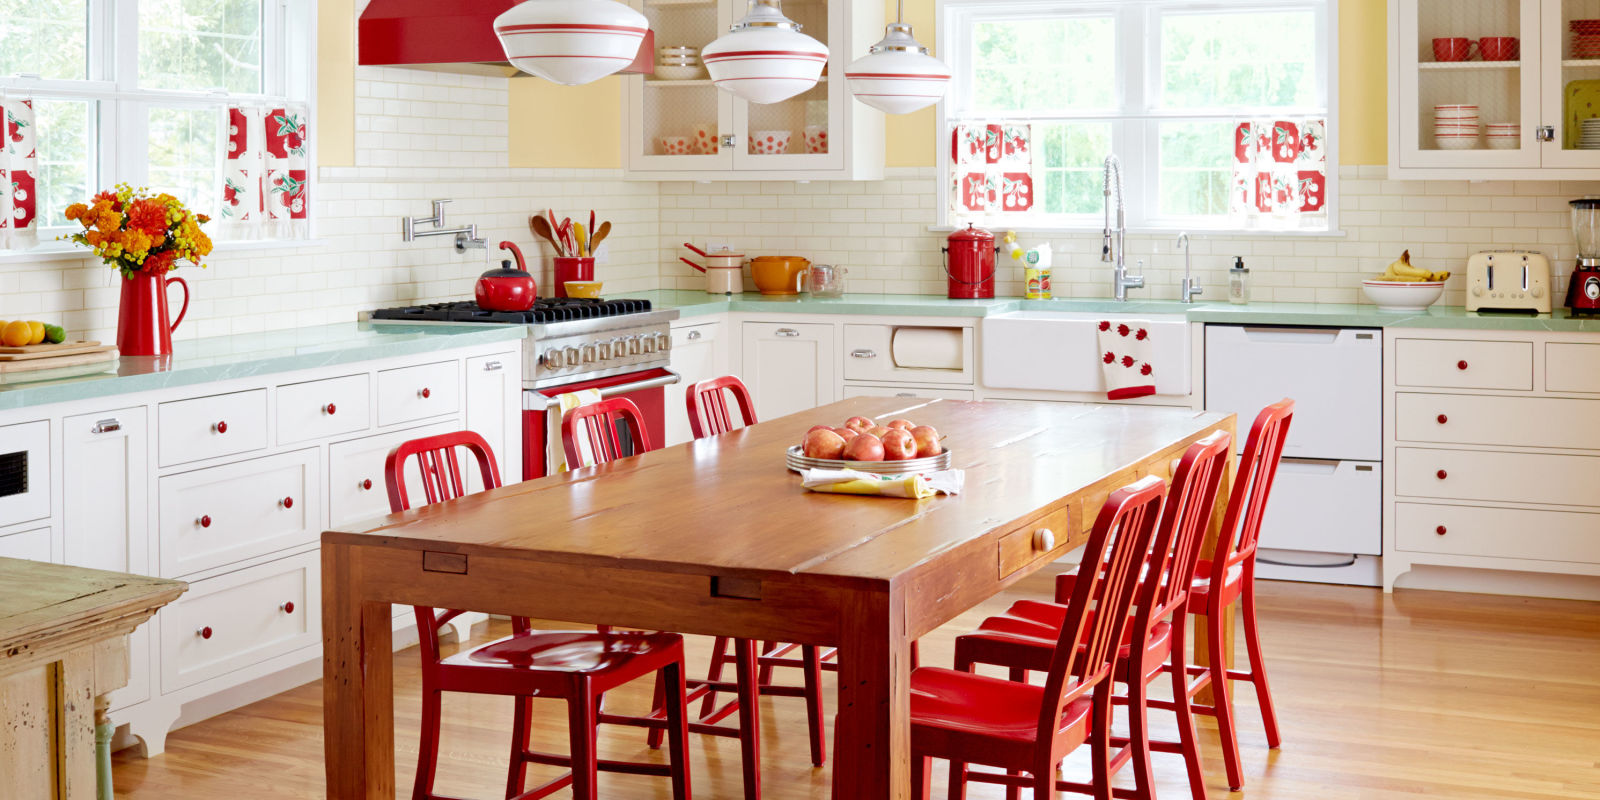 Retro kitchen kitchen decor ideas for Decoration retro cuisine